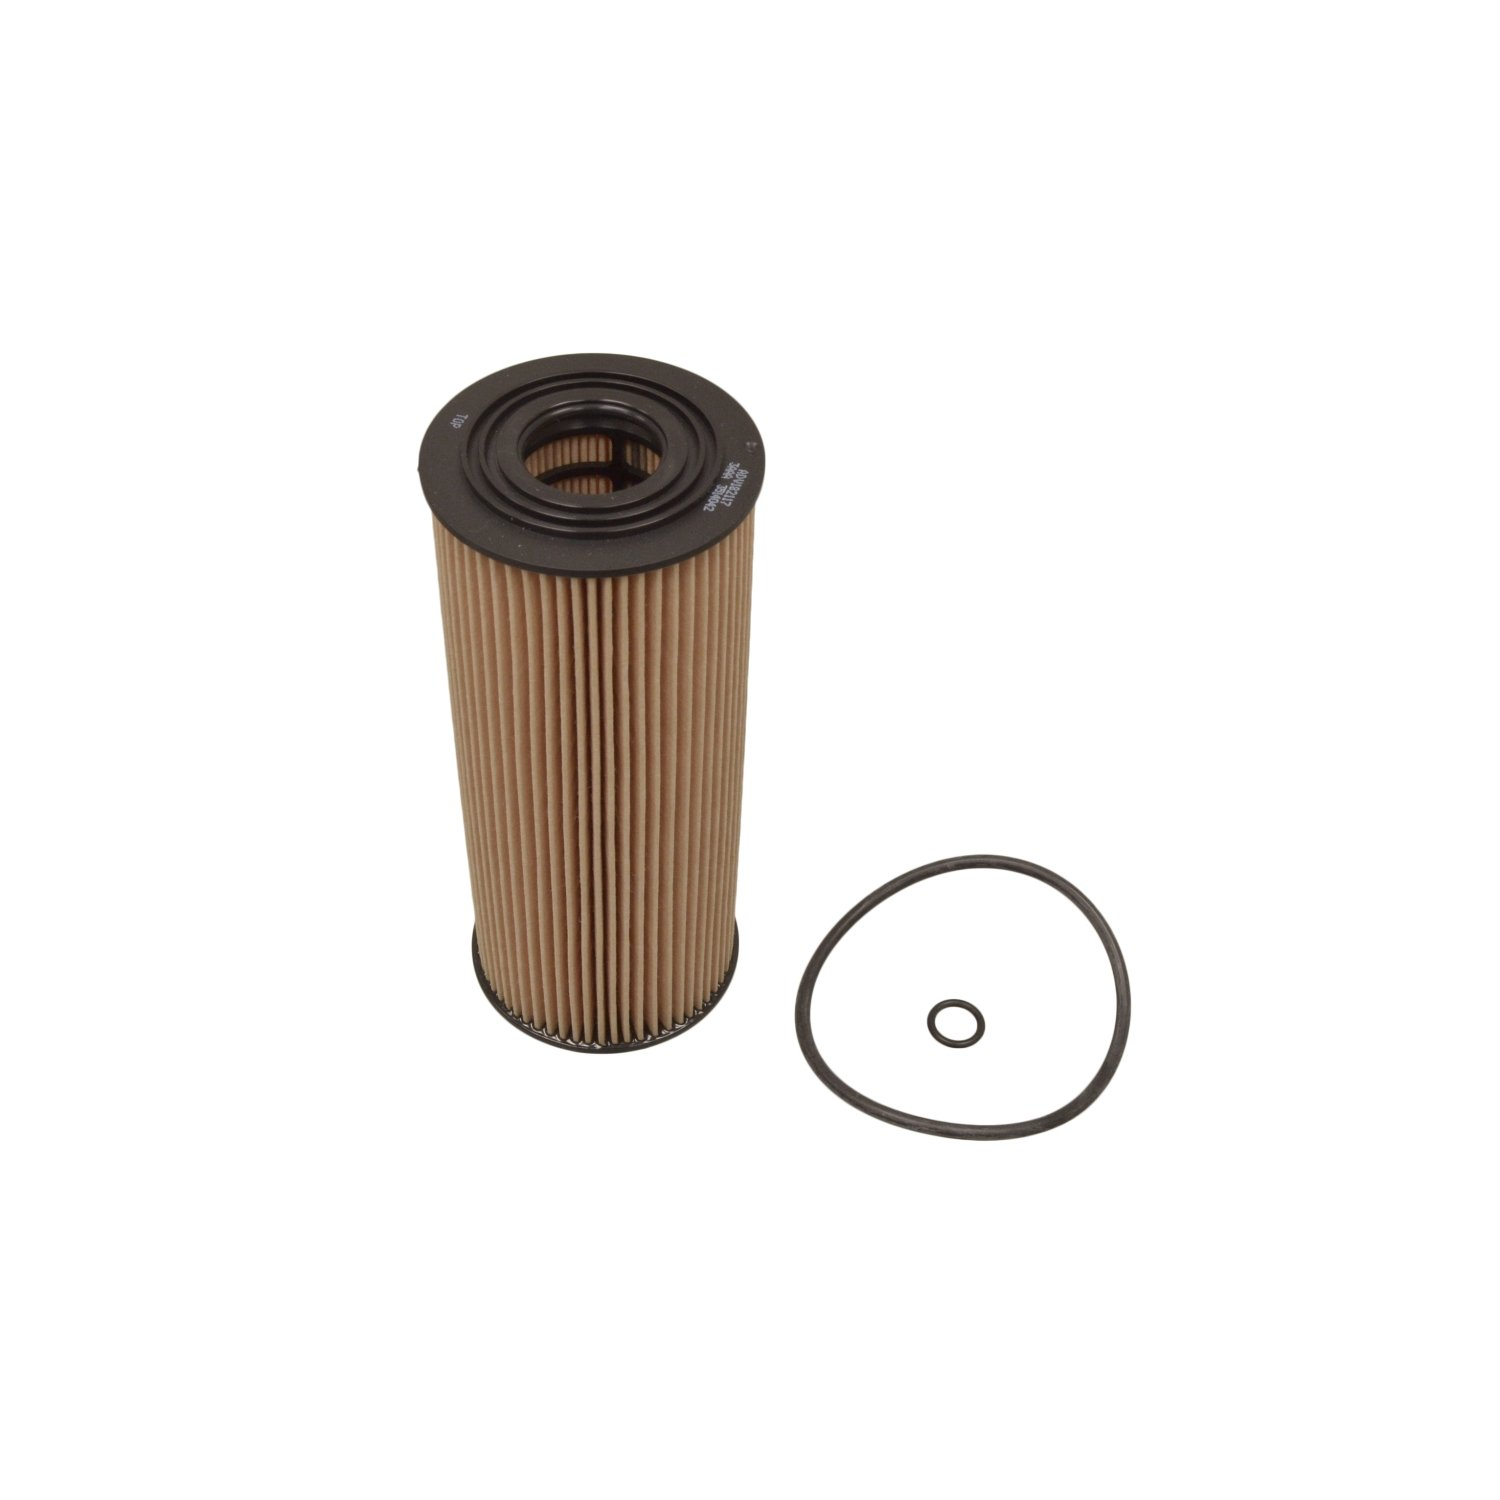 Blue Print ADV182117 oil filter with seal rings - Pack of 1